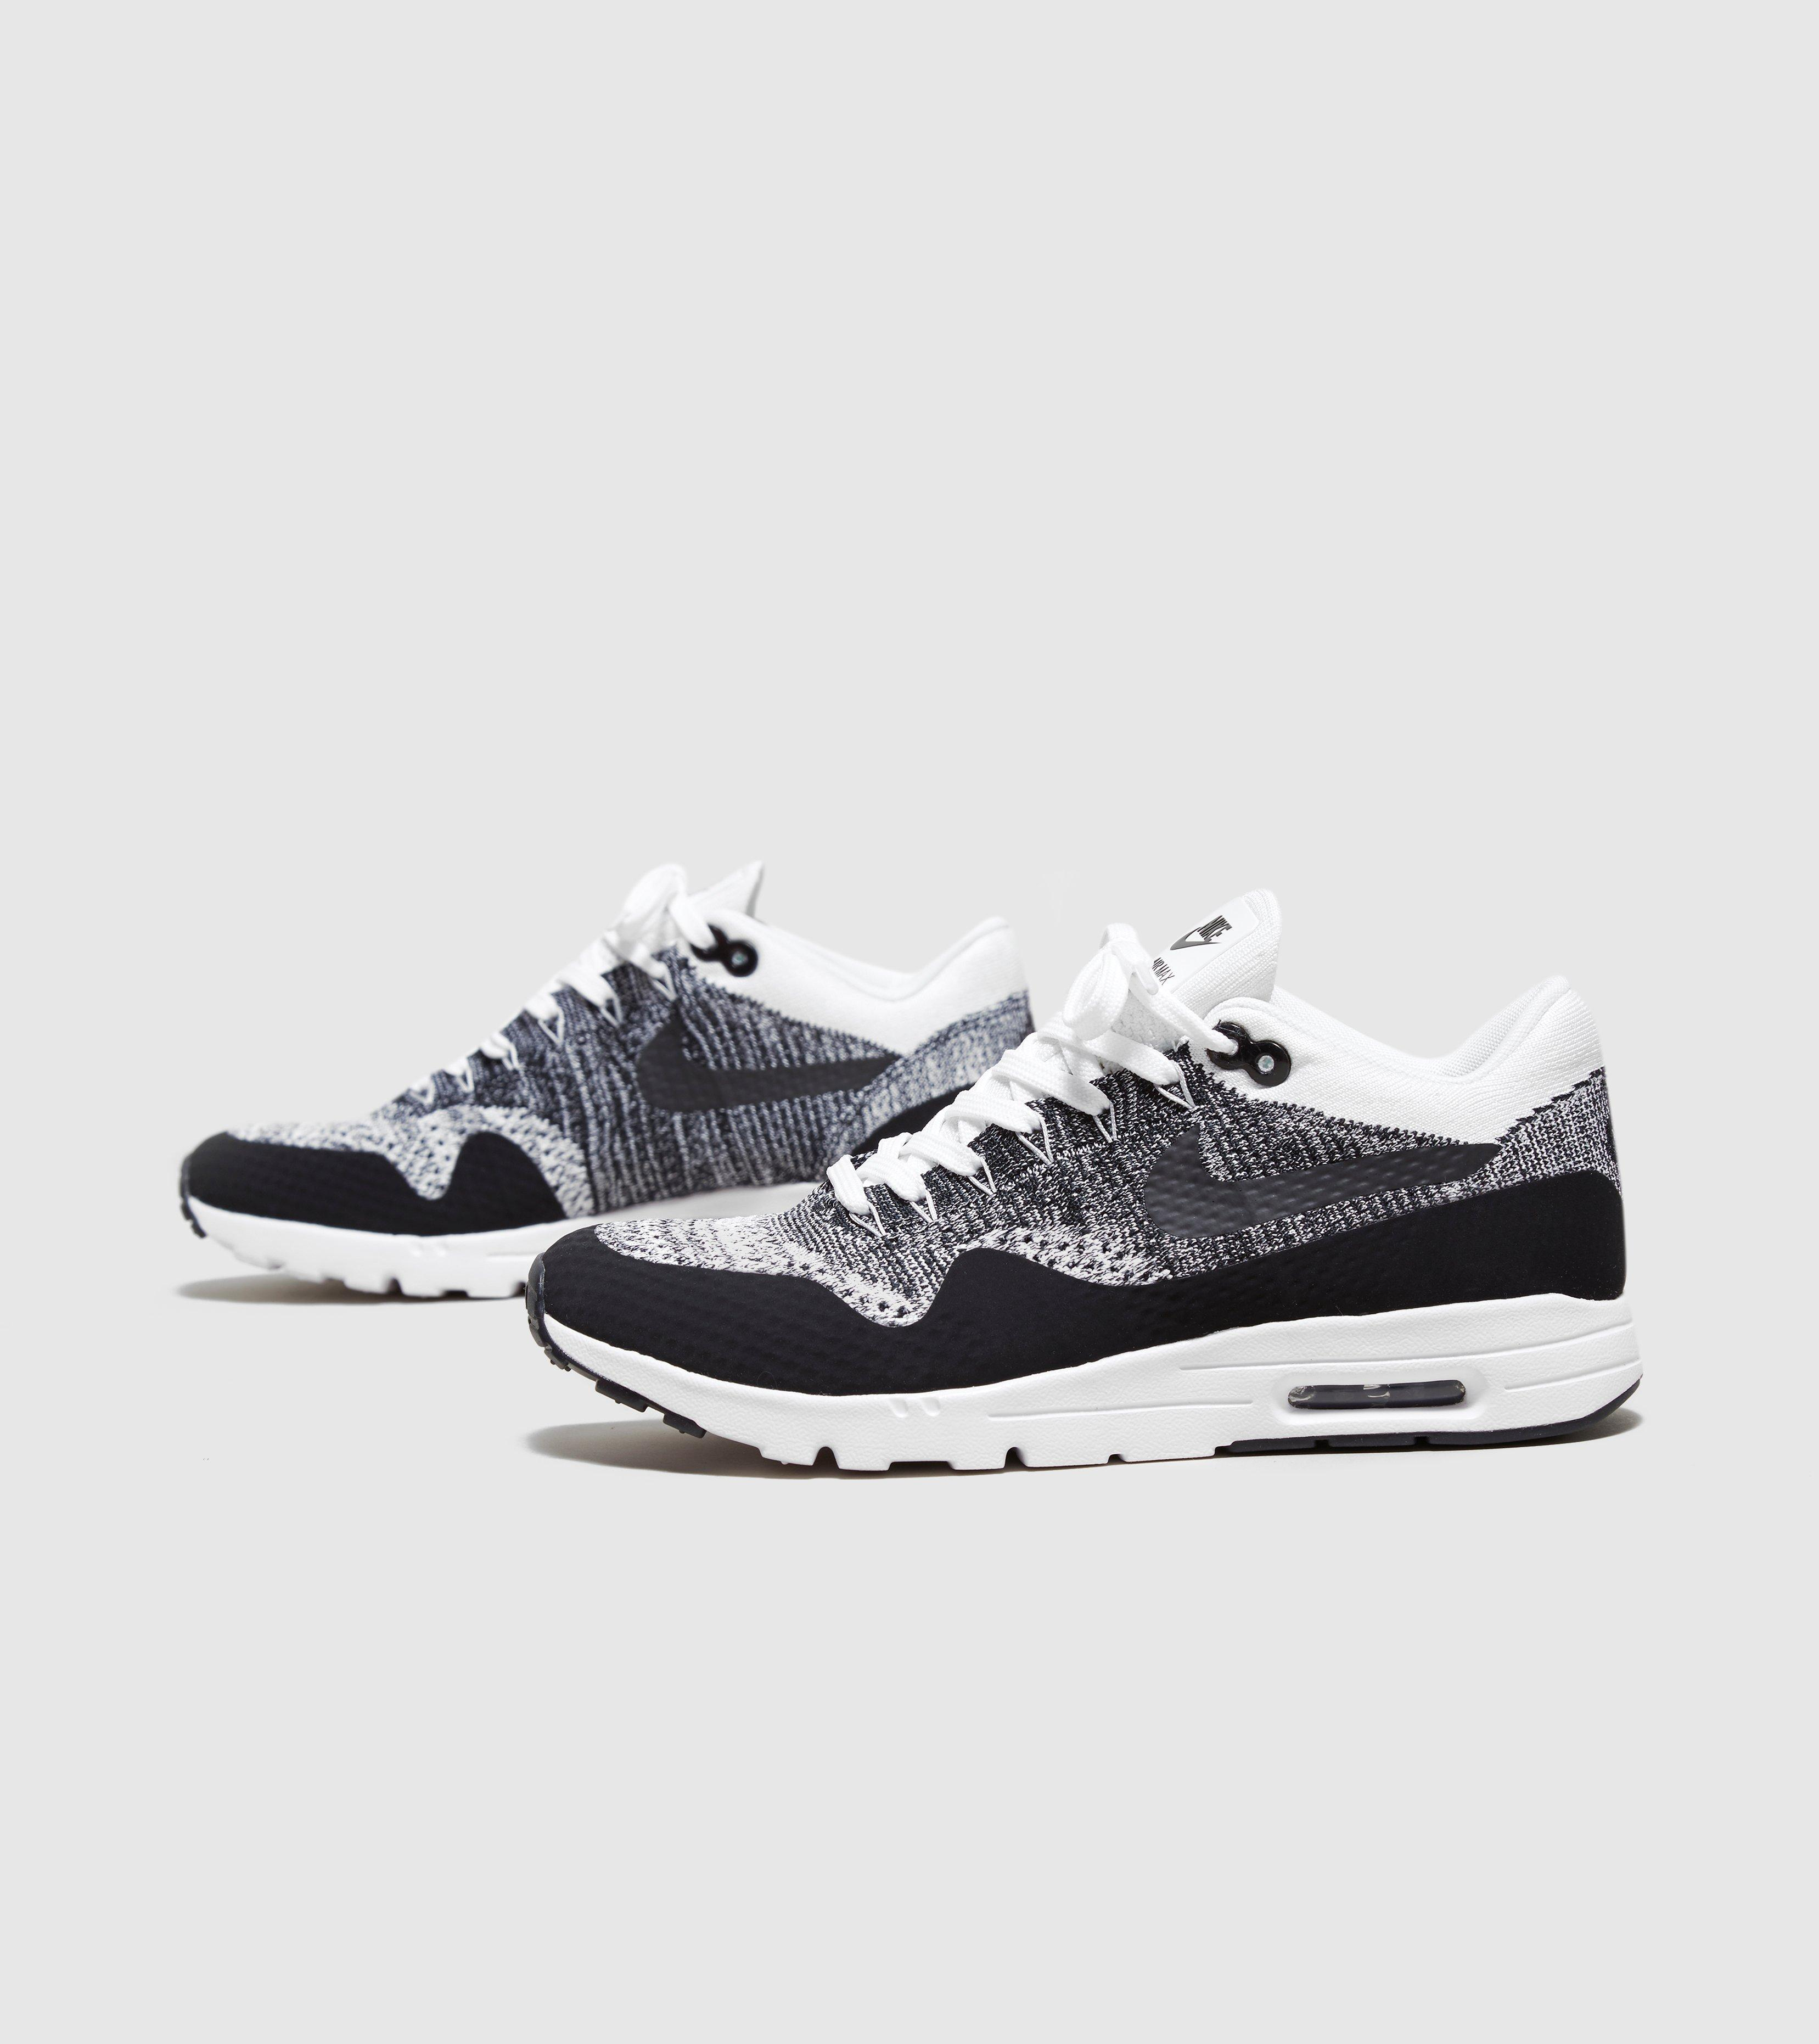 official photos f3d7a 86fc1 Nike - White Air Max 1 Ultra Flyknit Women's - Lyst